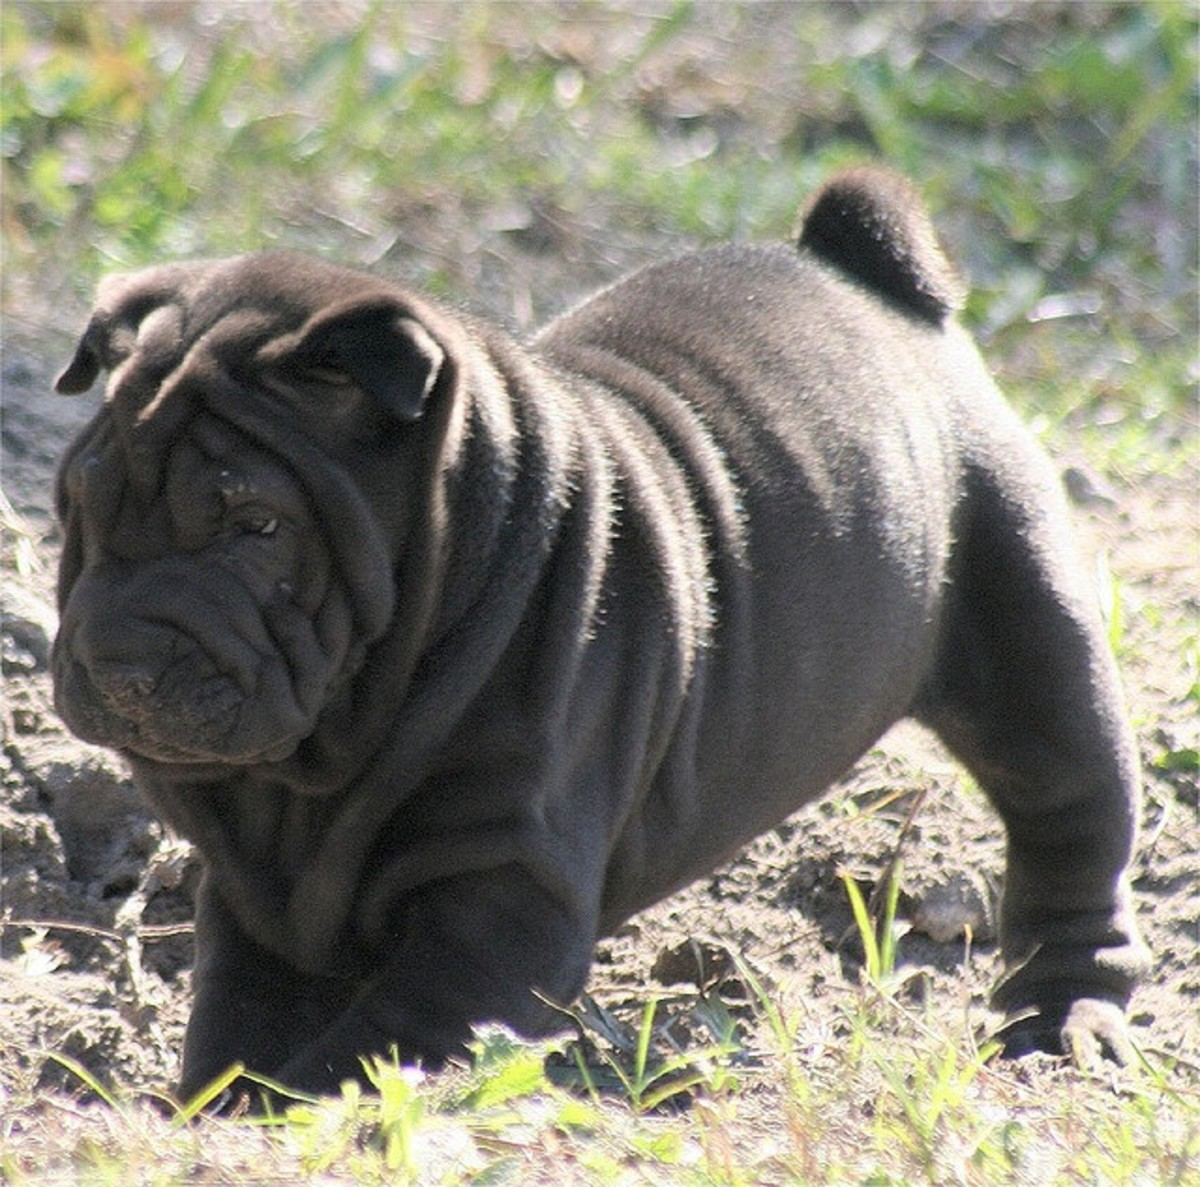 Shar-Peis can come in several colors. Some prefer basic black.